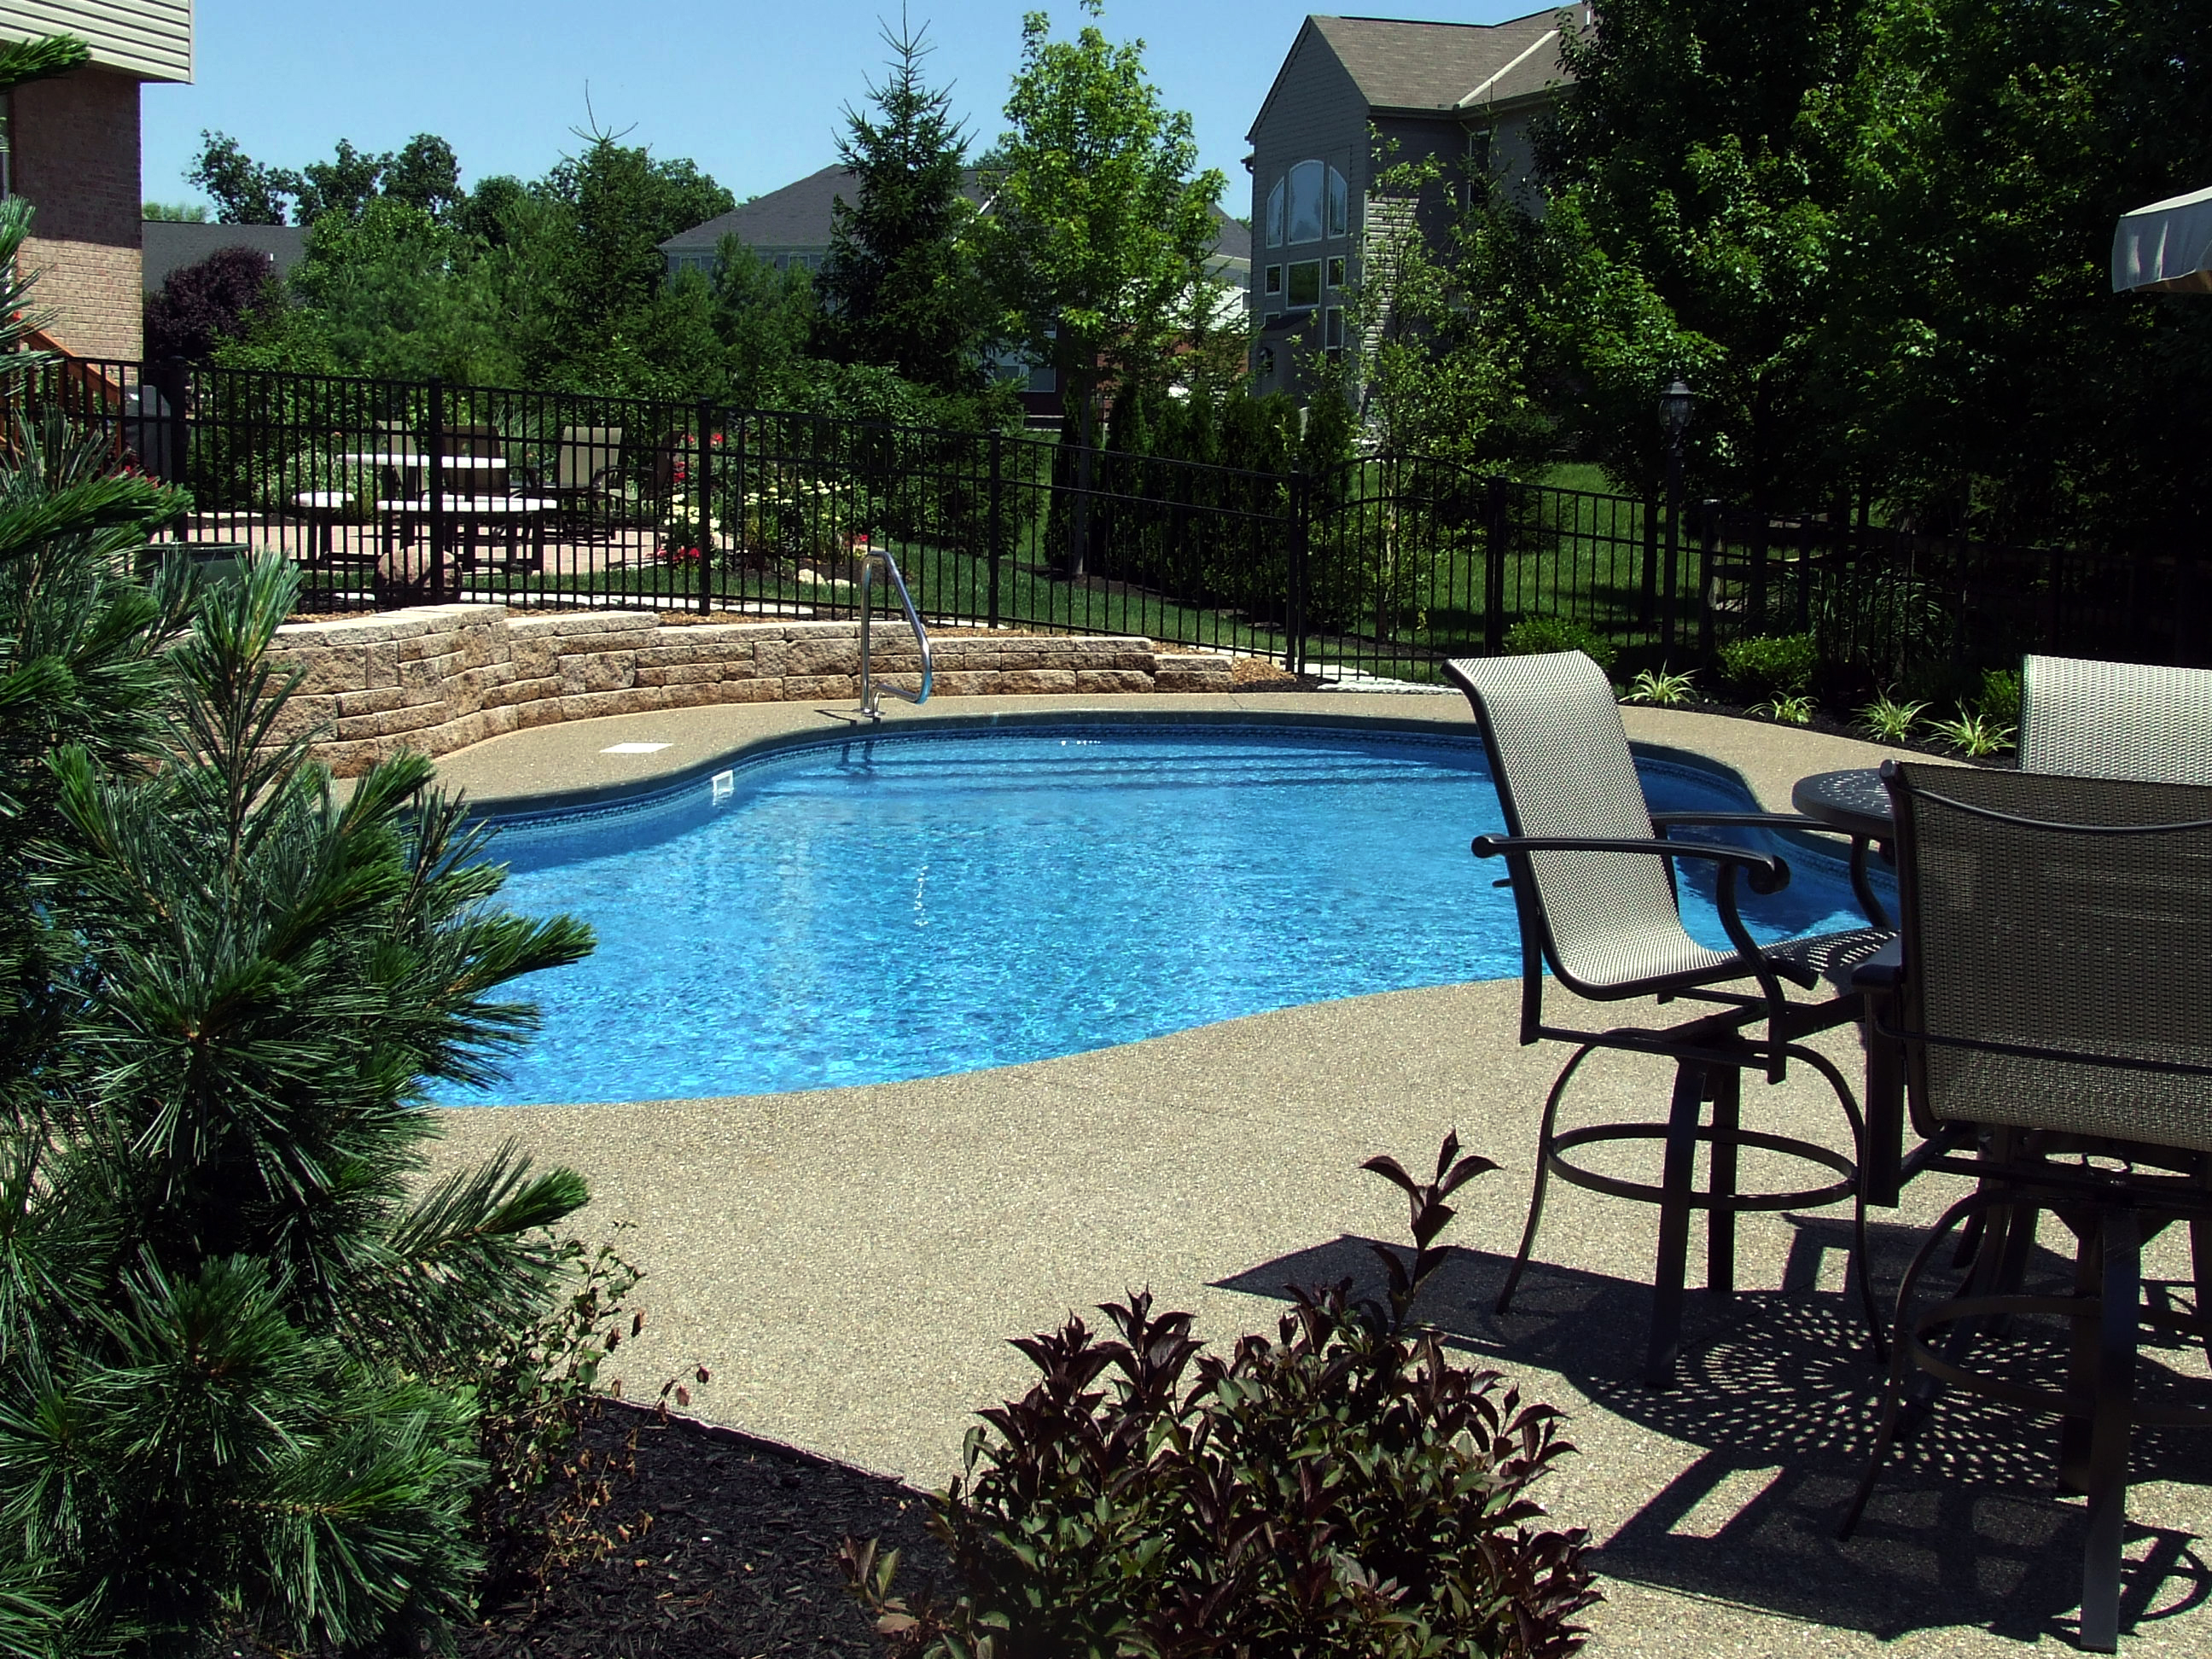 SunSpot Inground Pool Design - 105